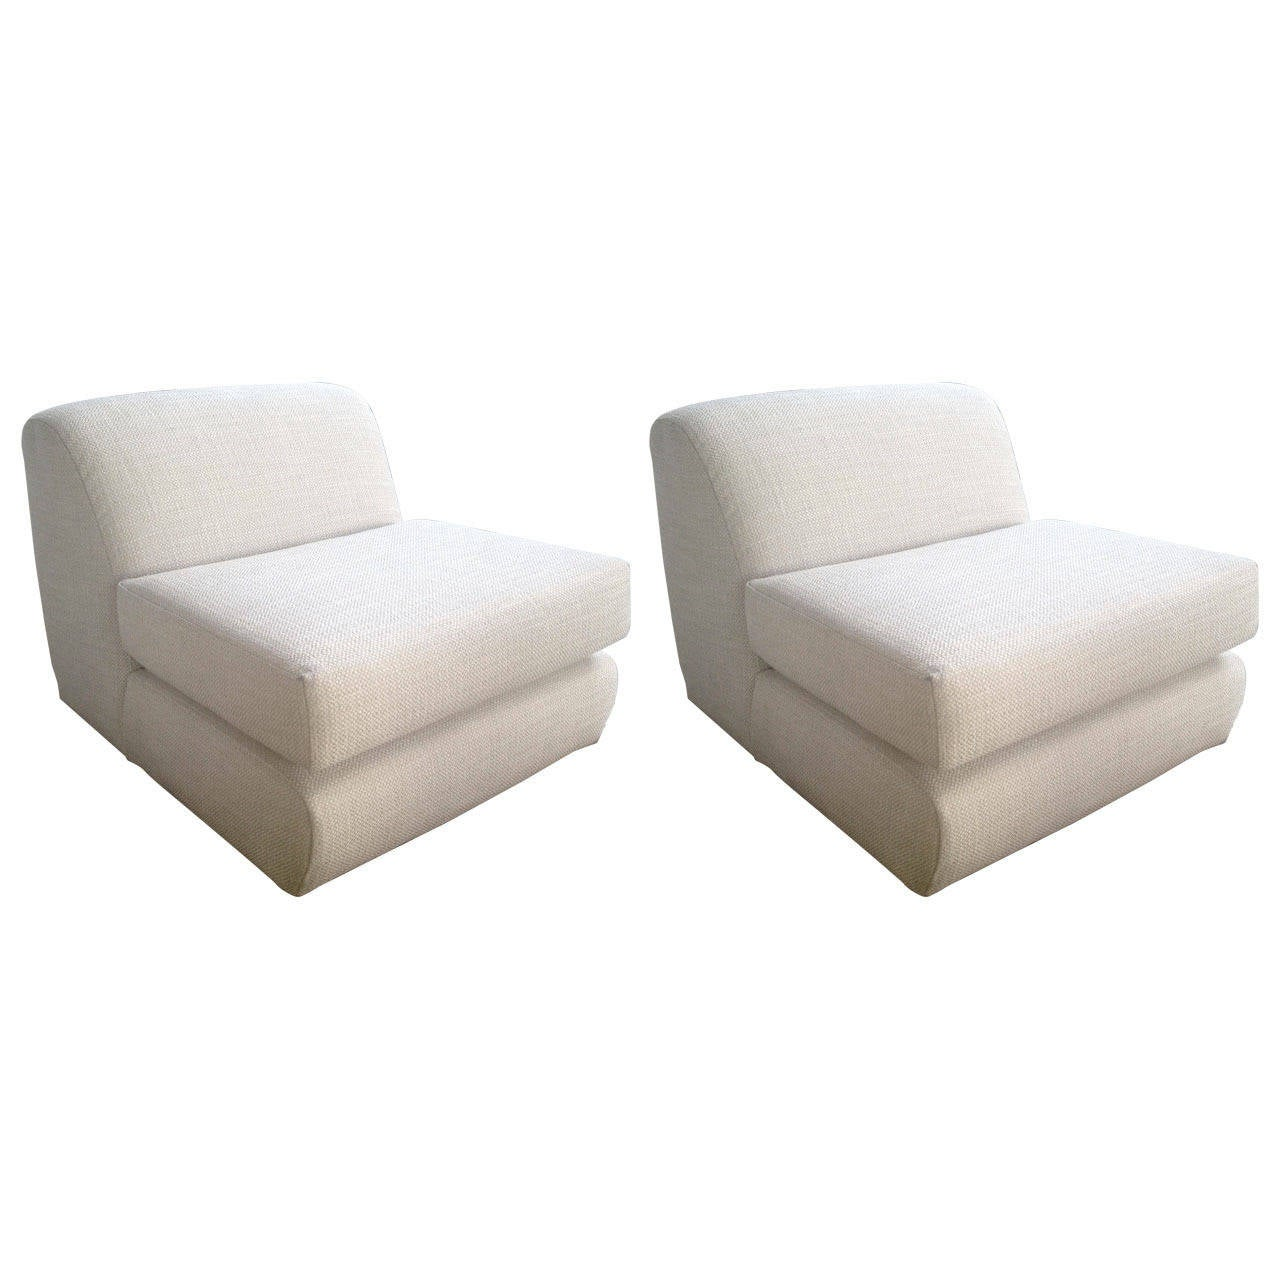 Pair of Steve Chase Slipper Chairs at 1stdibs